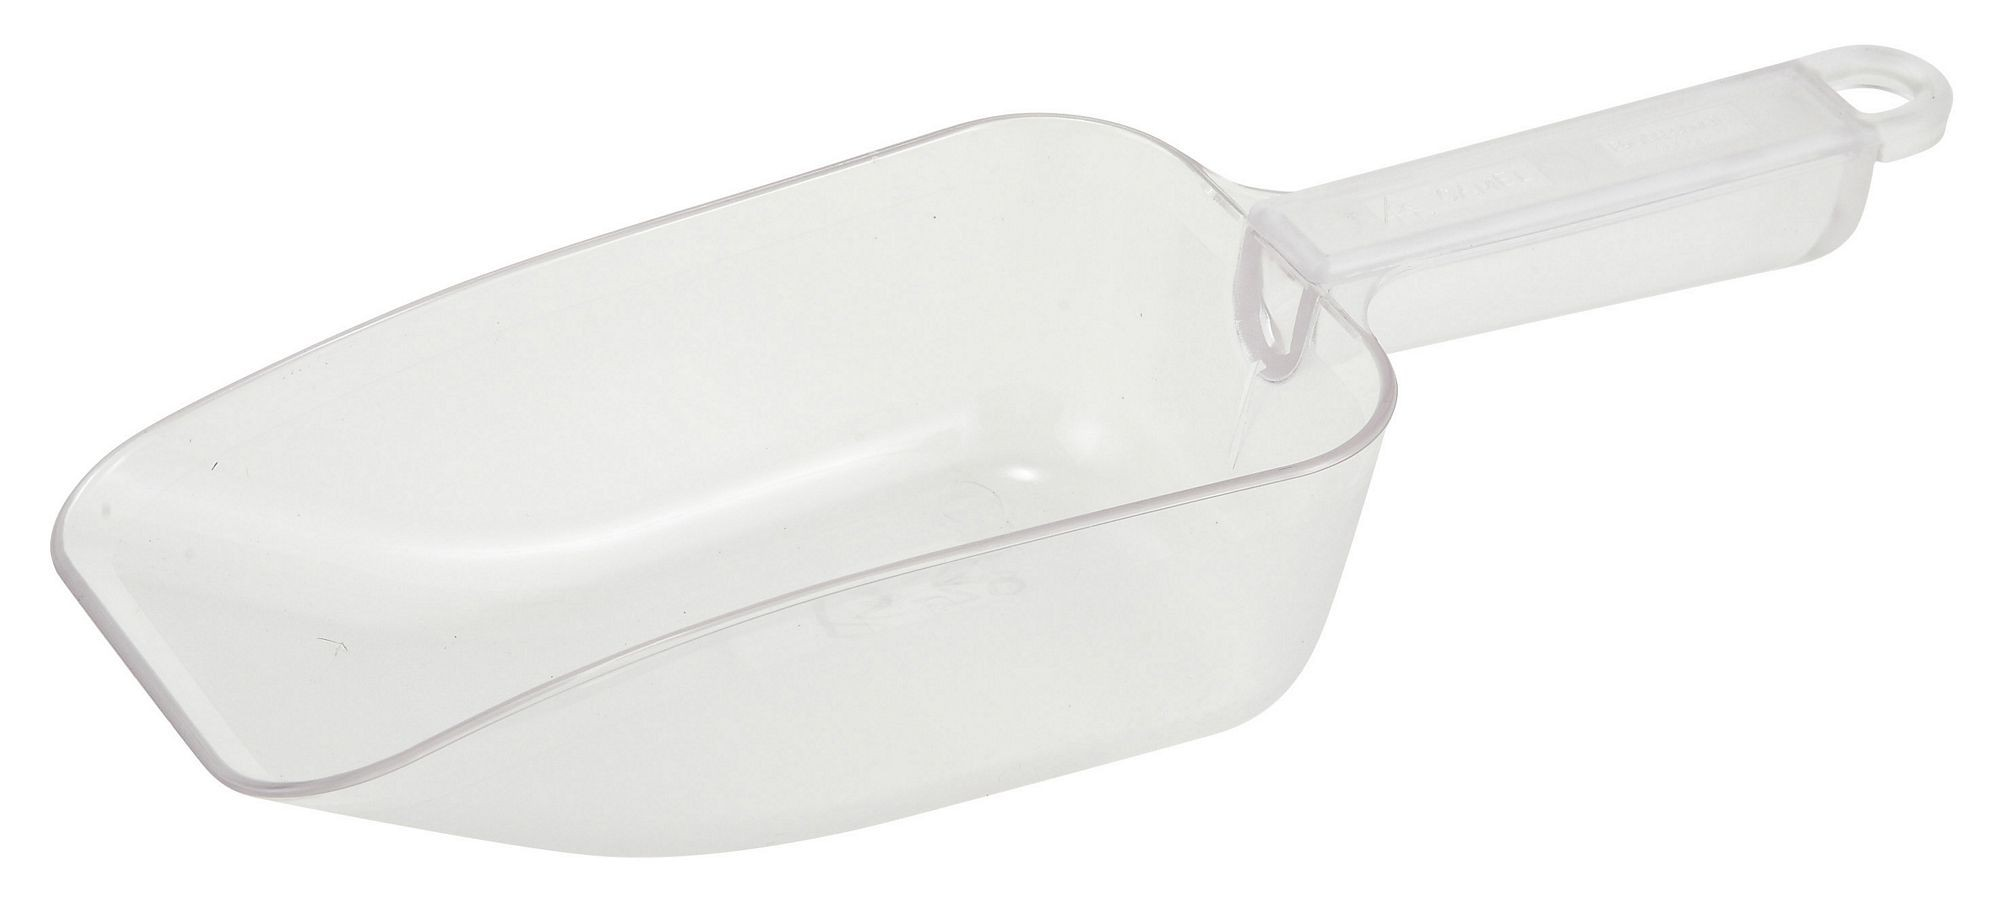 Winco PS-20 White Plastic 20 oz. Utility Scoop